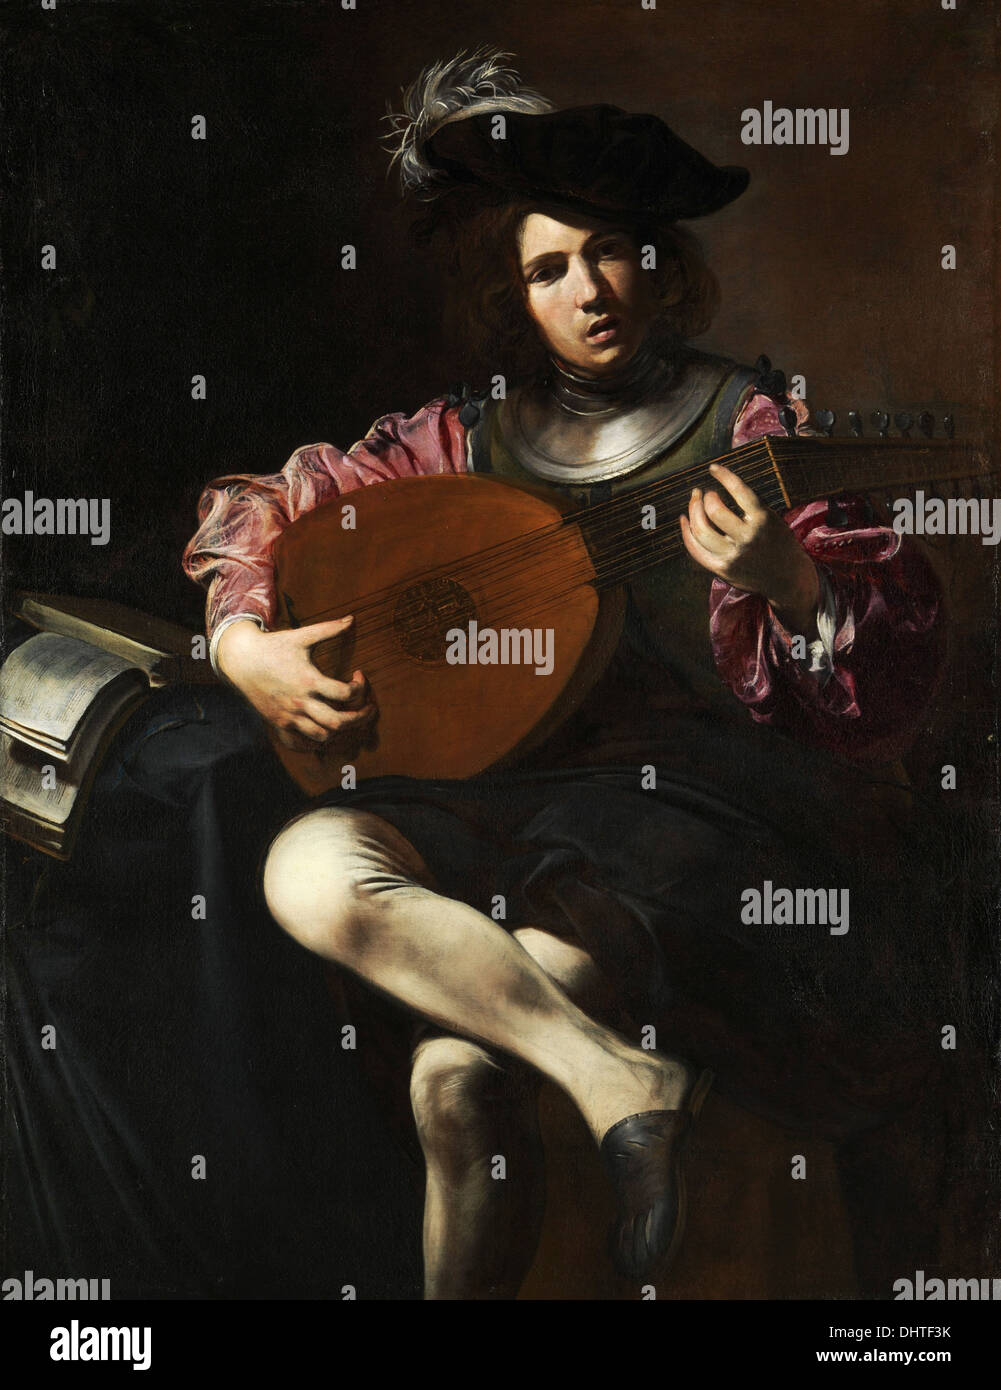 Lute Player - by Valentin de Boulogne, 1626 - Stock Image